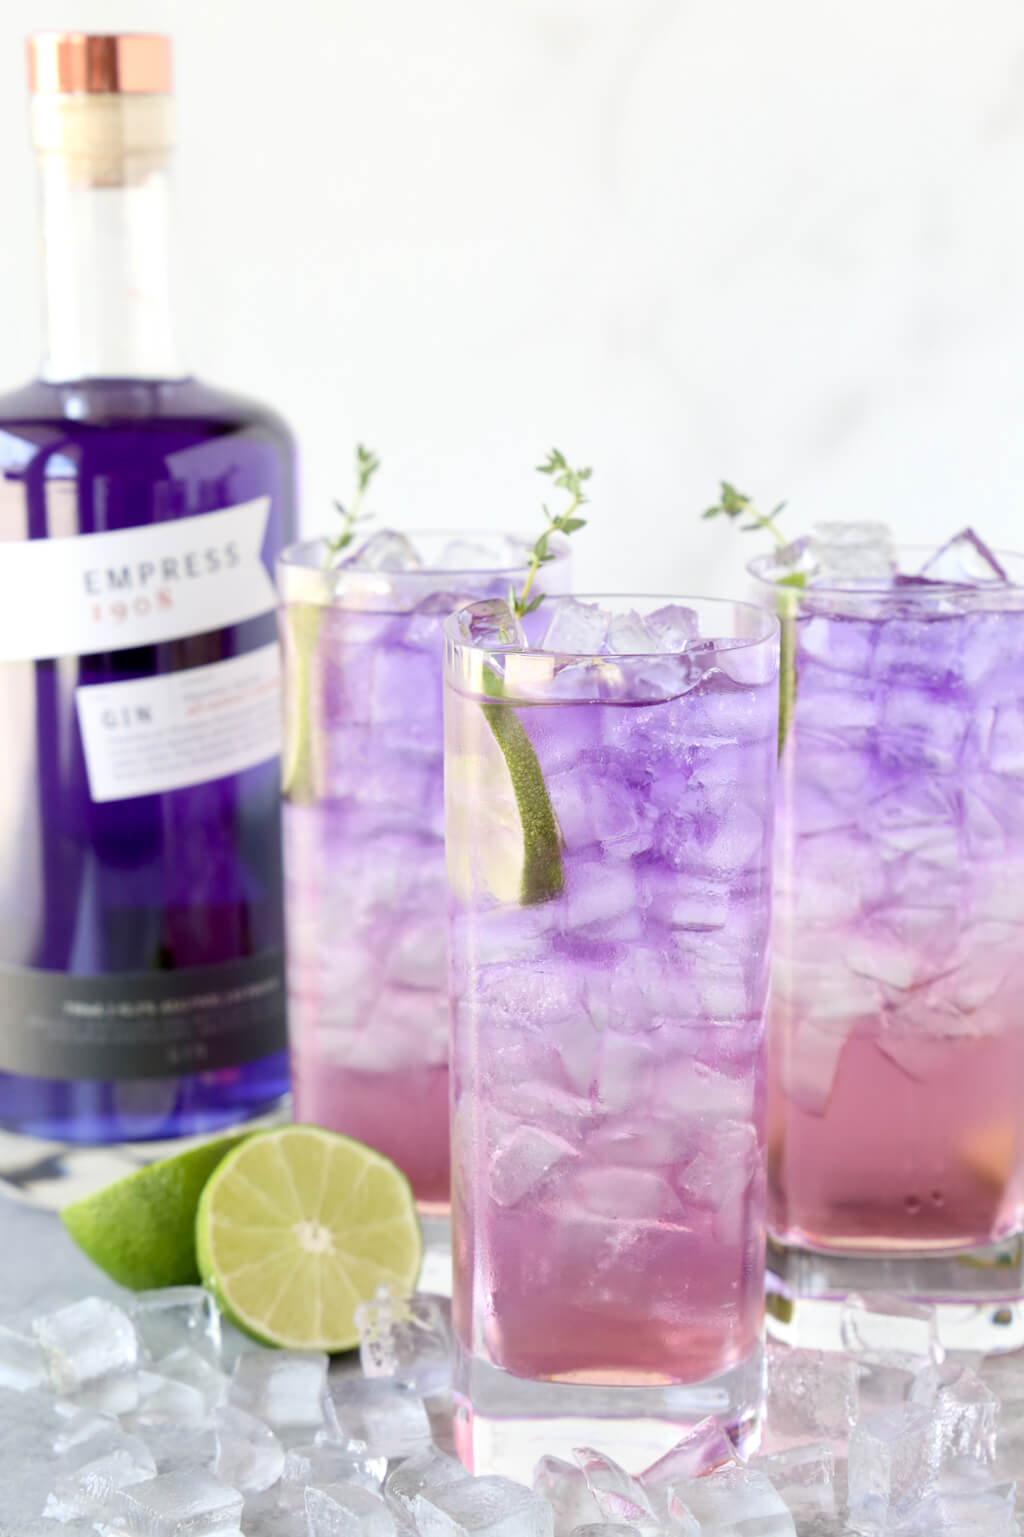 three glasses filled with ice and a purple and pink drink next to a blue bottle of gin